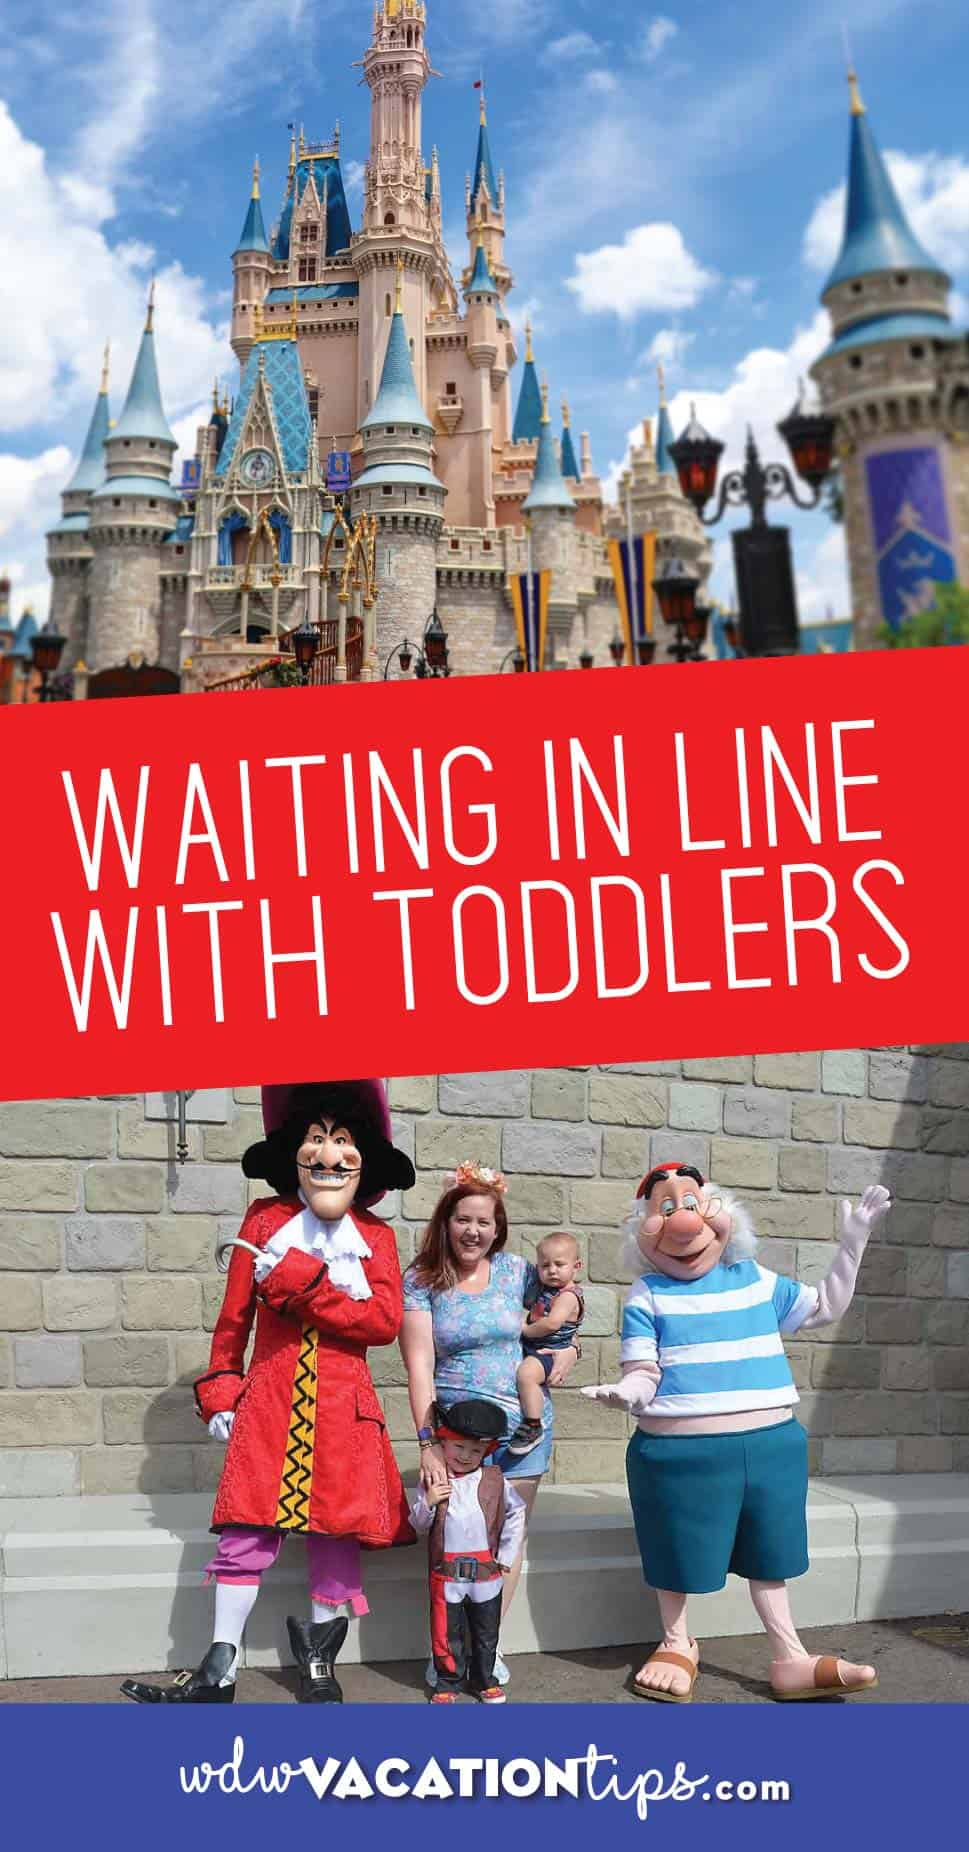 Waiting in line at Disney with toddlers